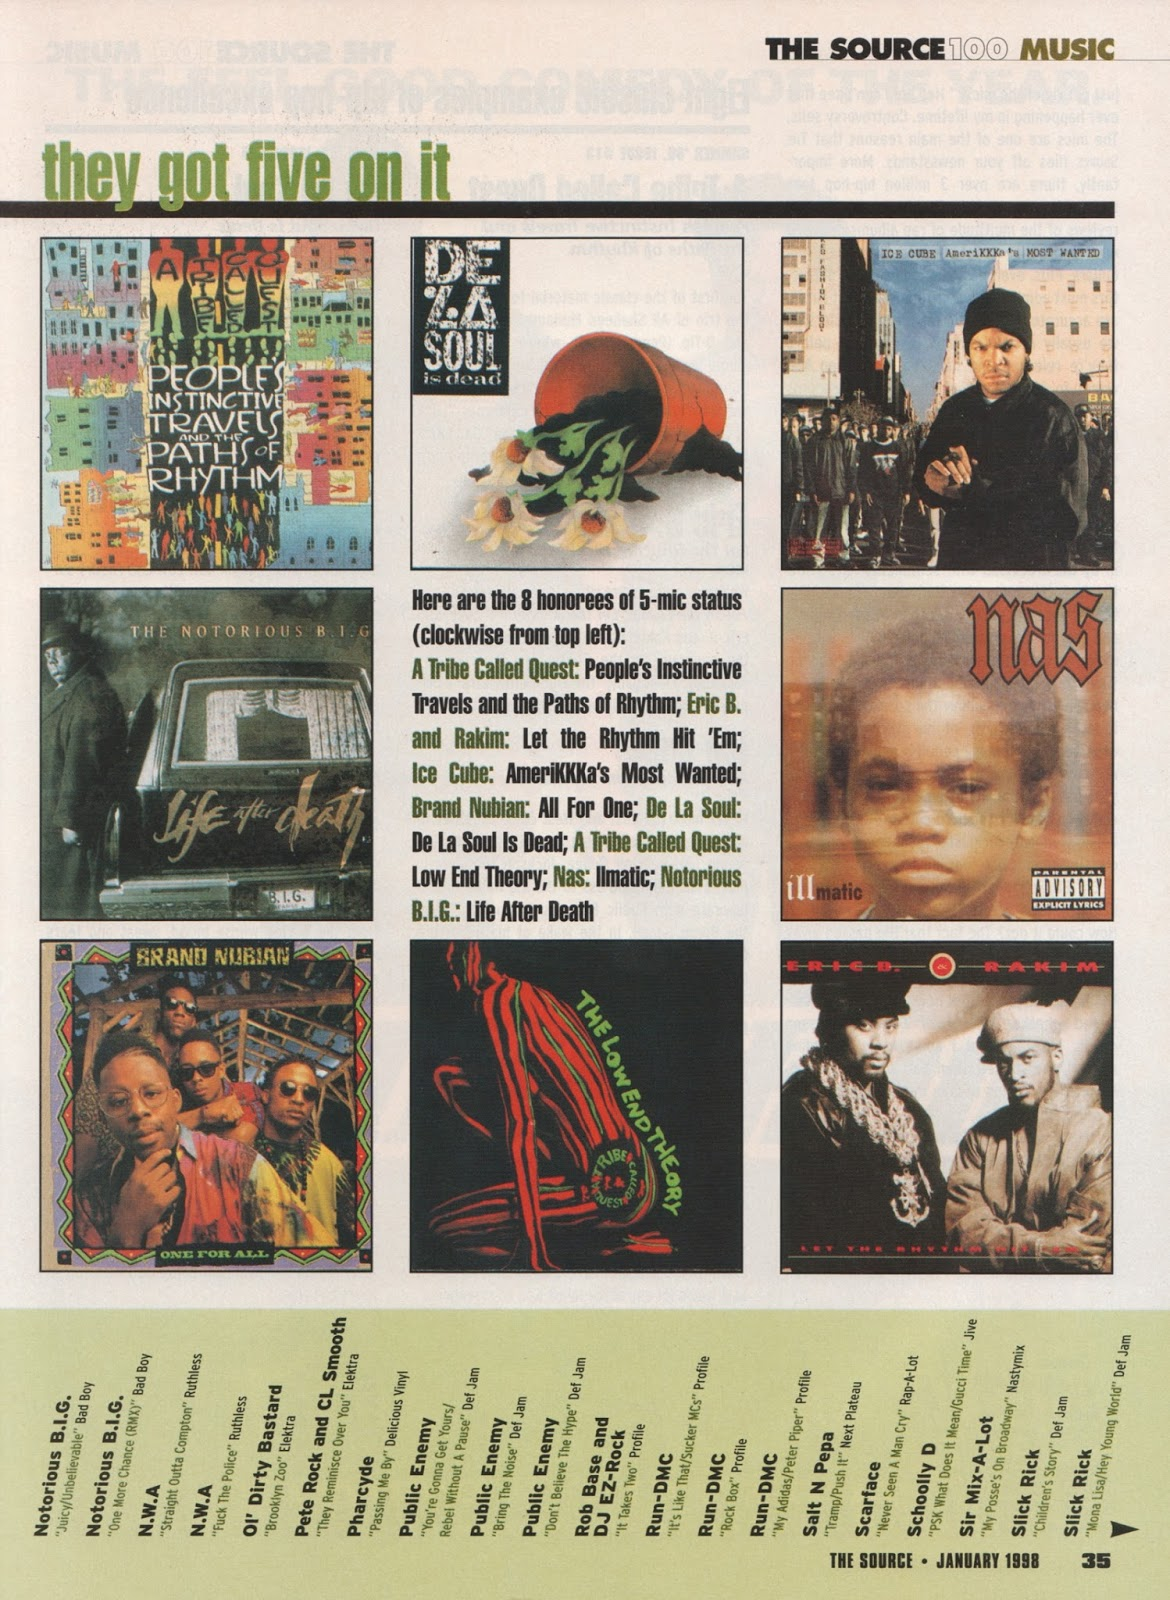 The Source 5-mic ratings Illmatic Biggie